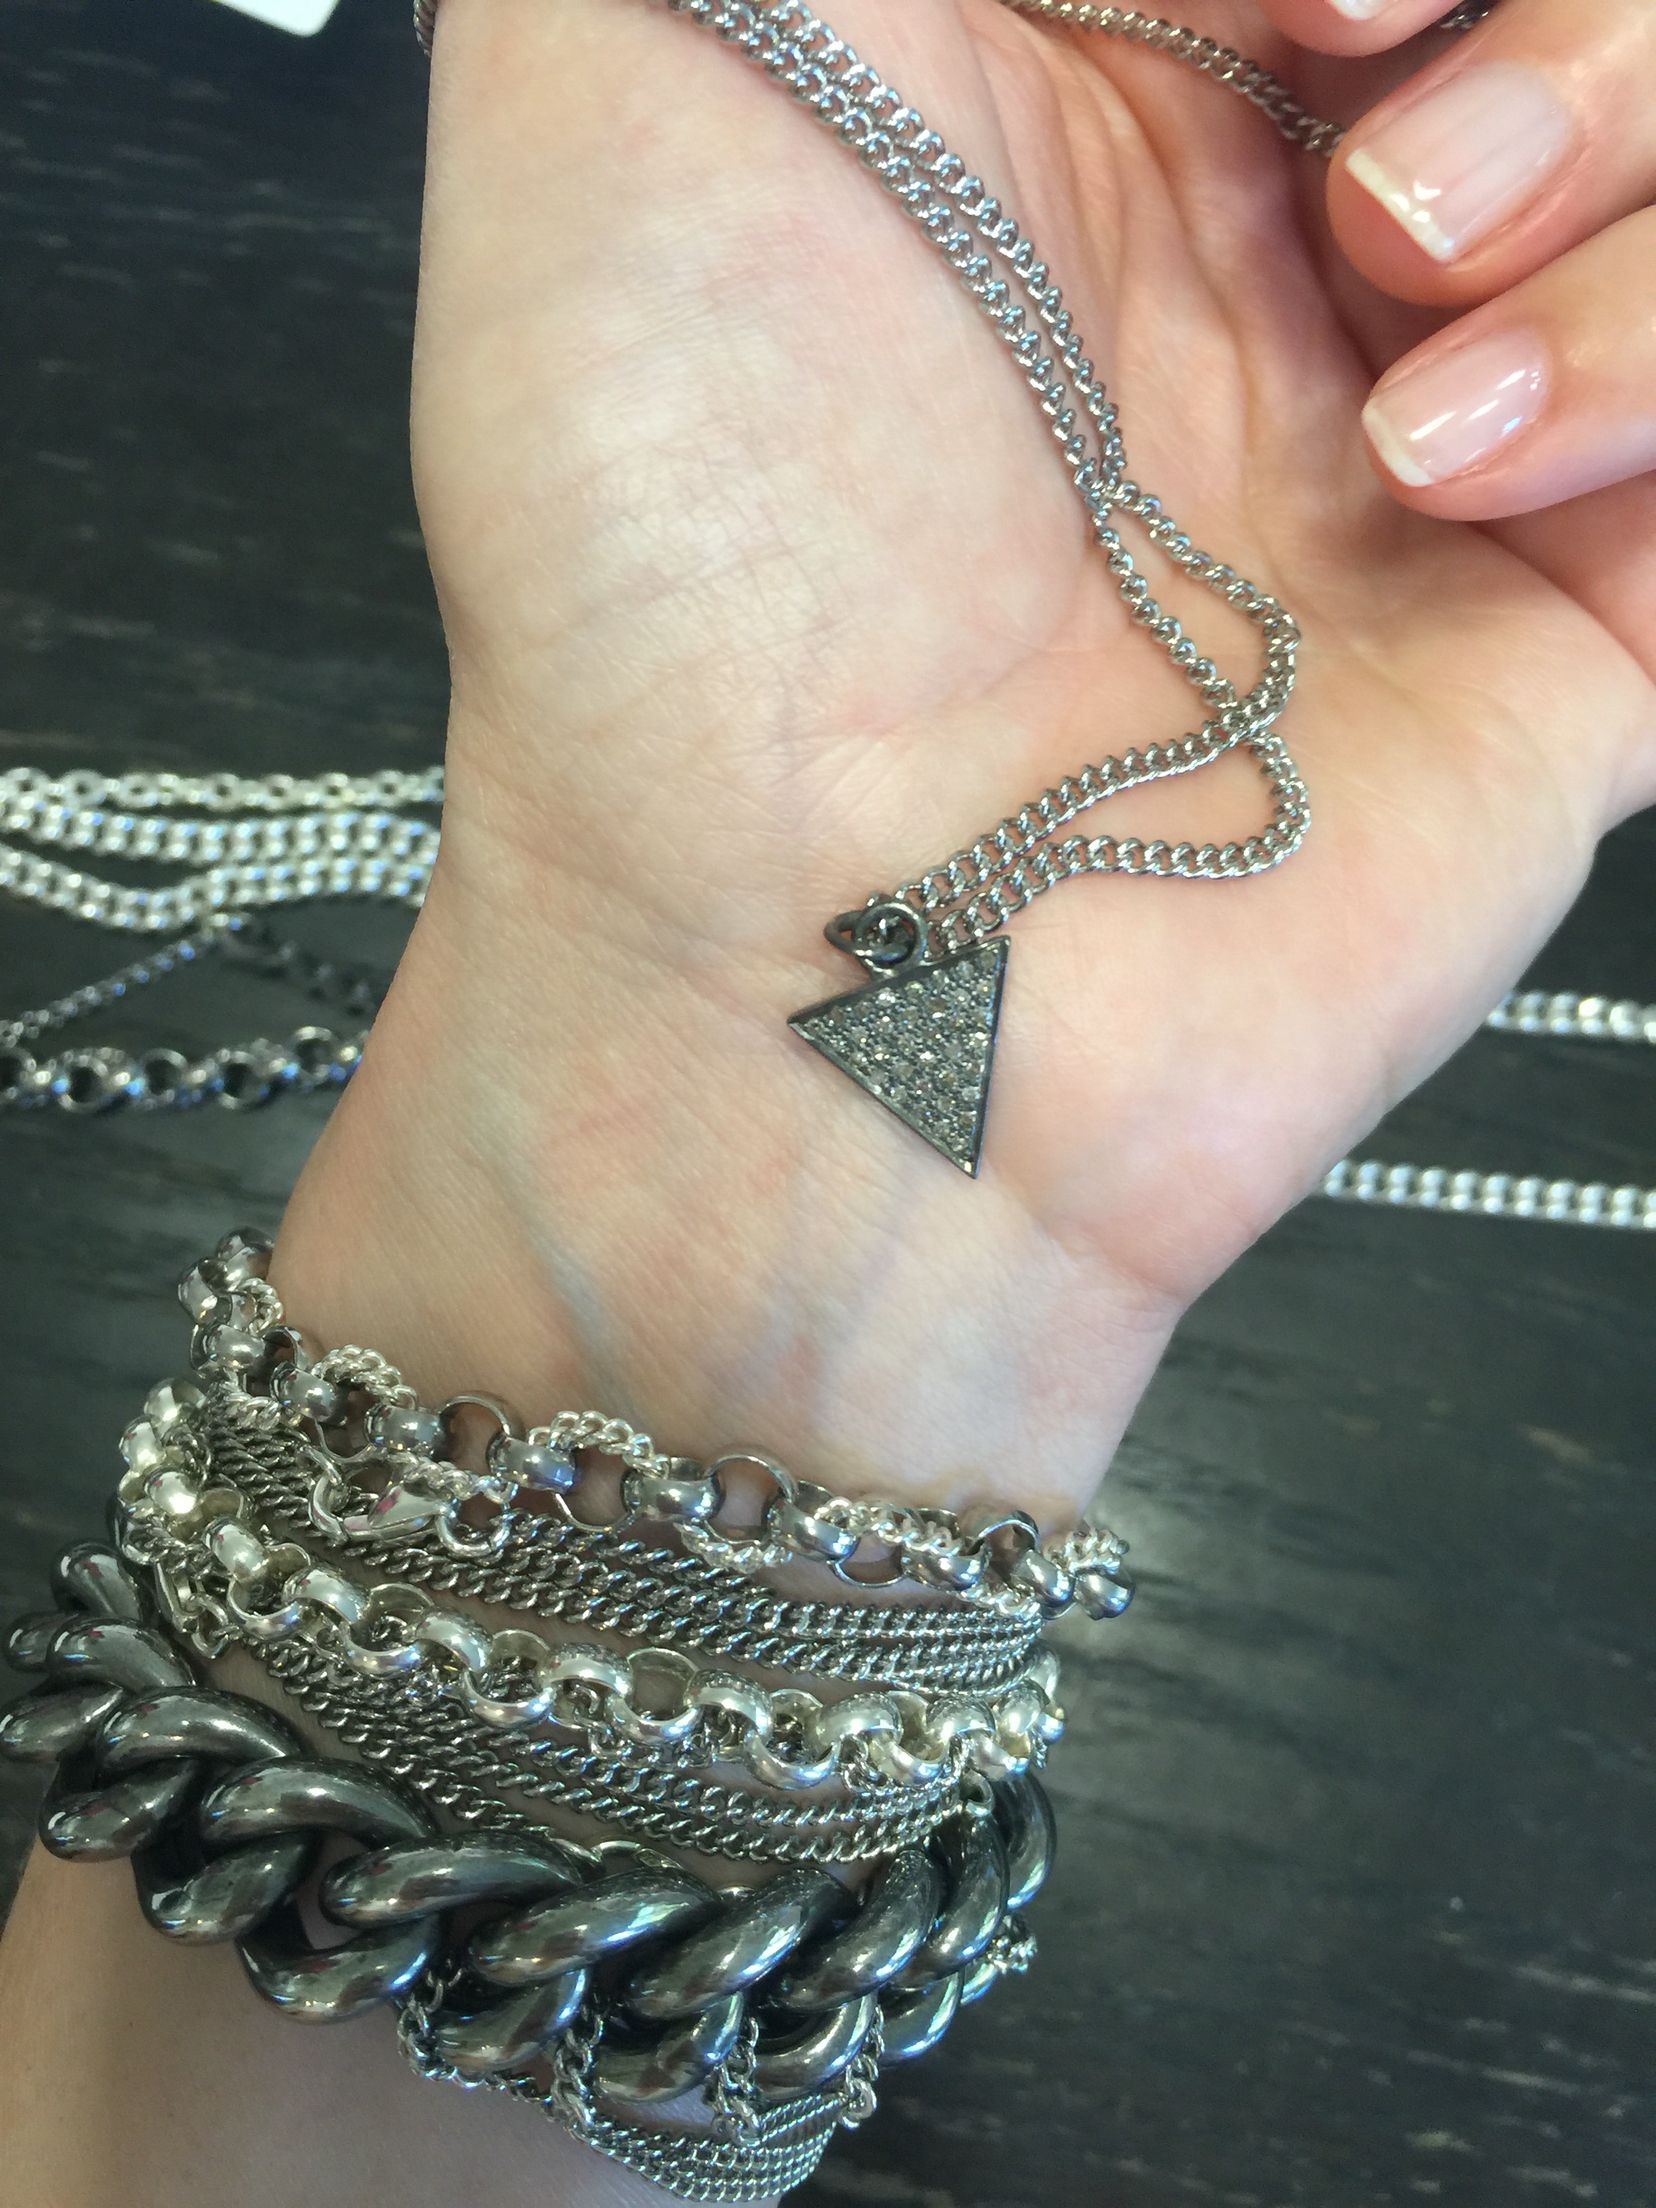 Pin by Zazzy Jewelry on Arm Candy - Bracelets and more